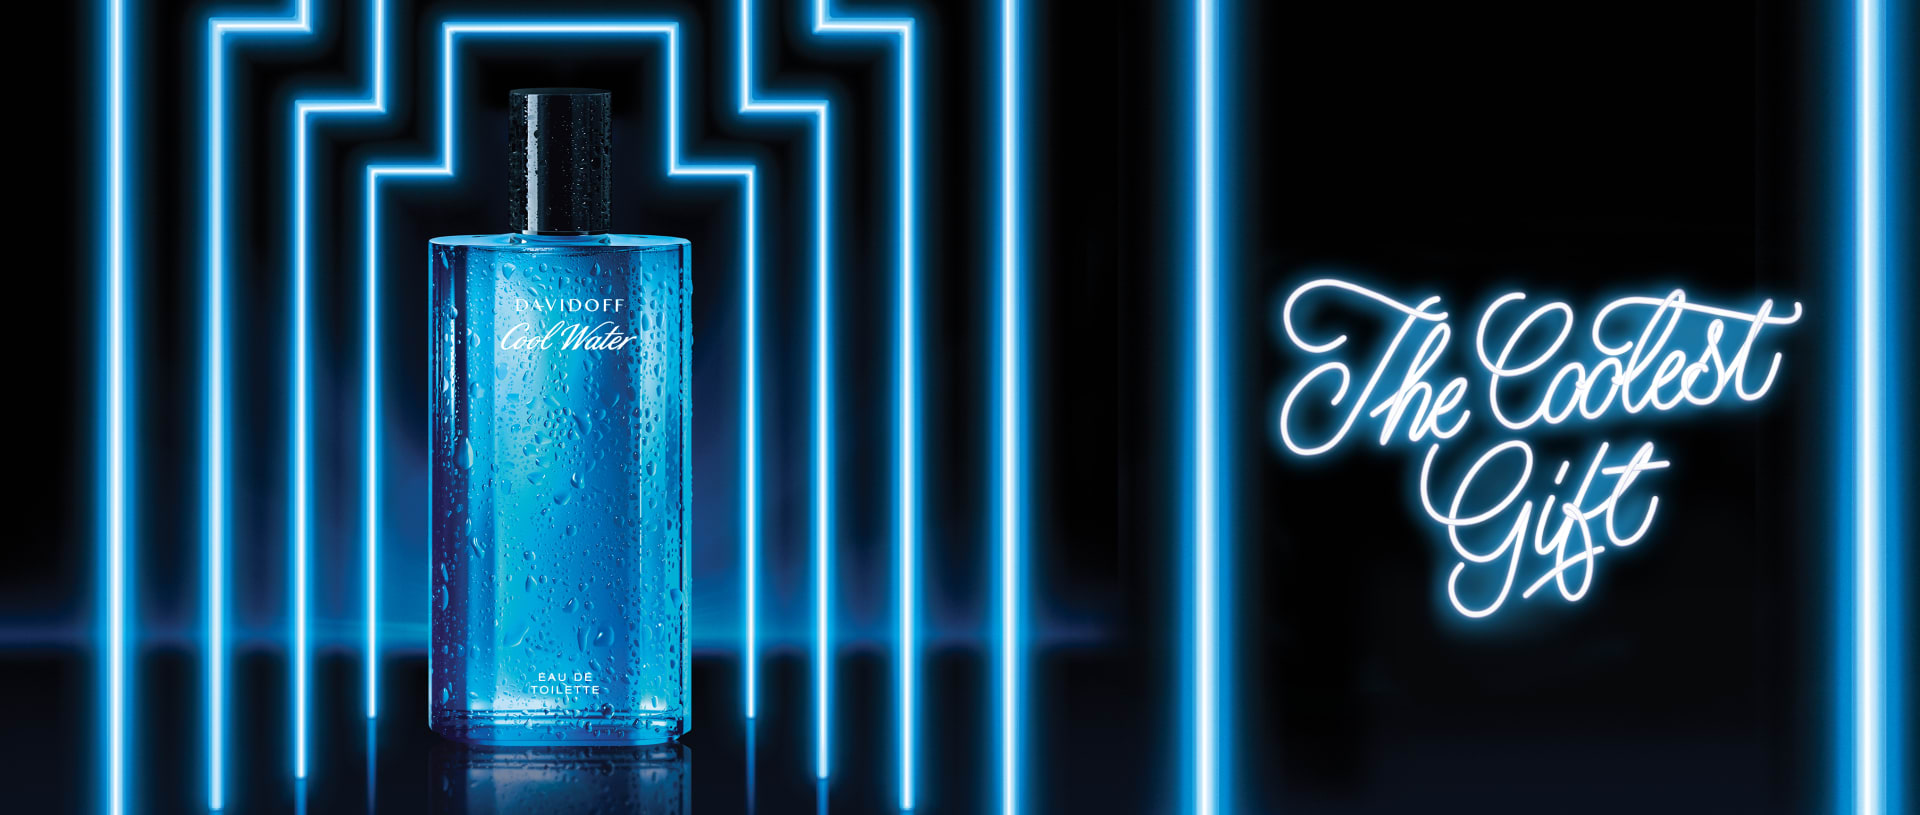 DAVIDOFF Cool Water - the coolest gift